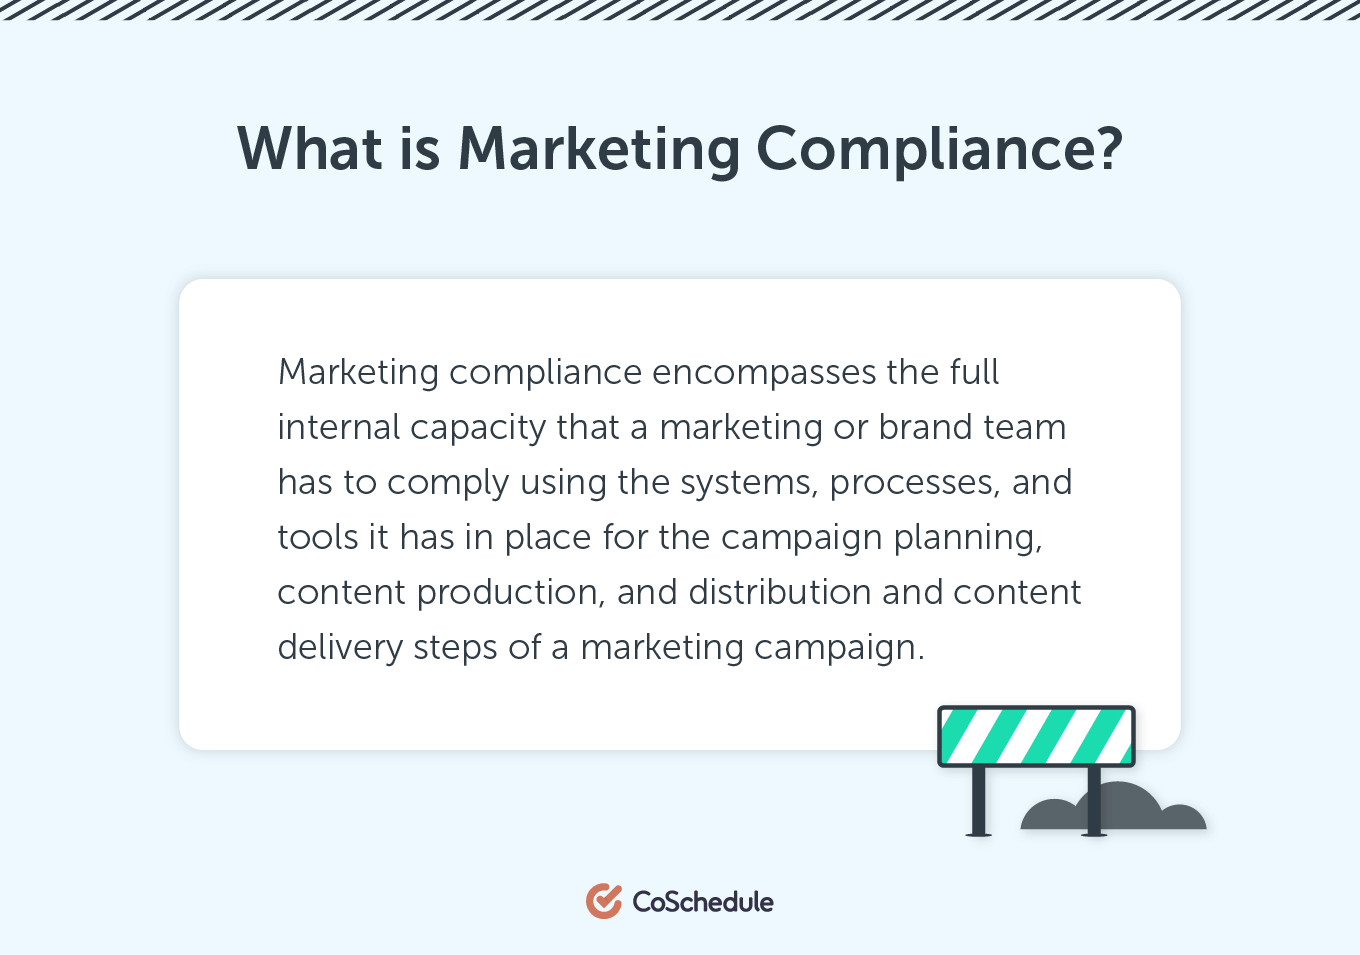 Definition of Marketing Compliance